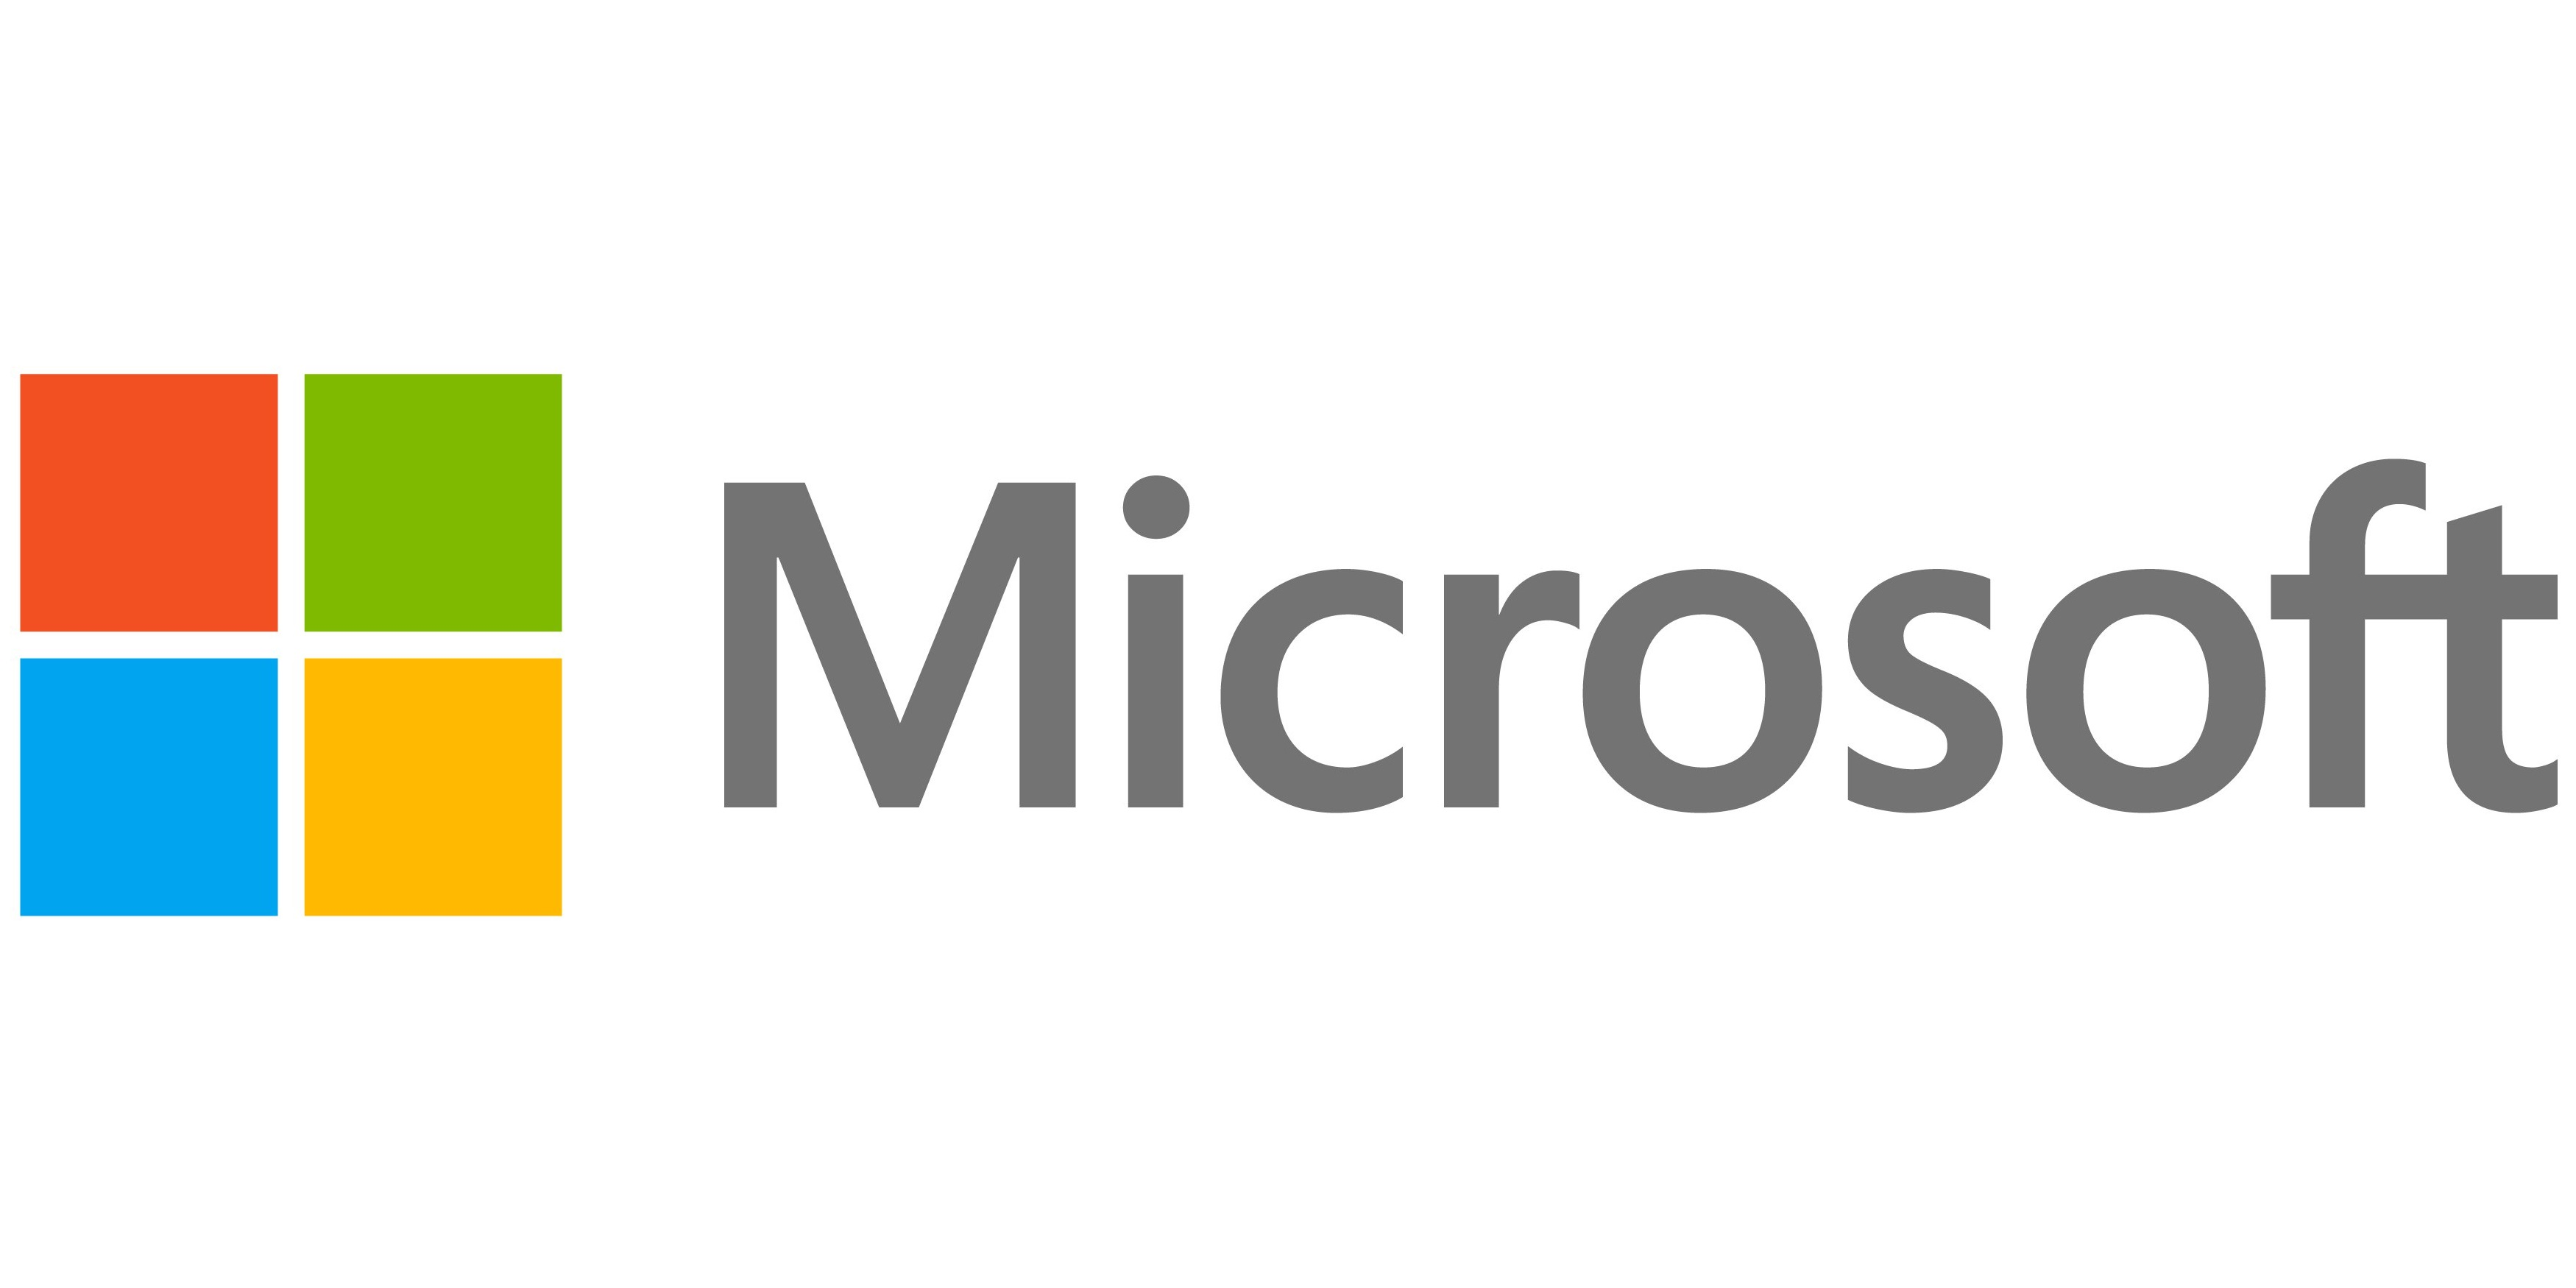 Microsoft adds AI and IoT cautionary language to its earnings